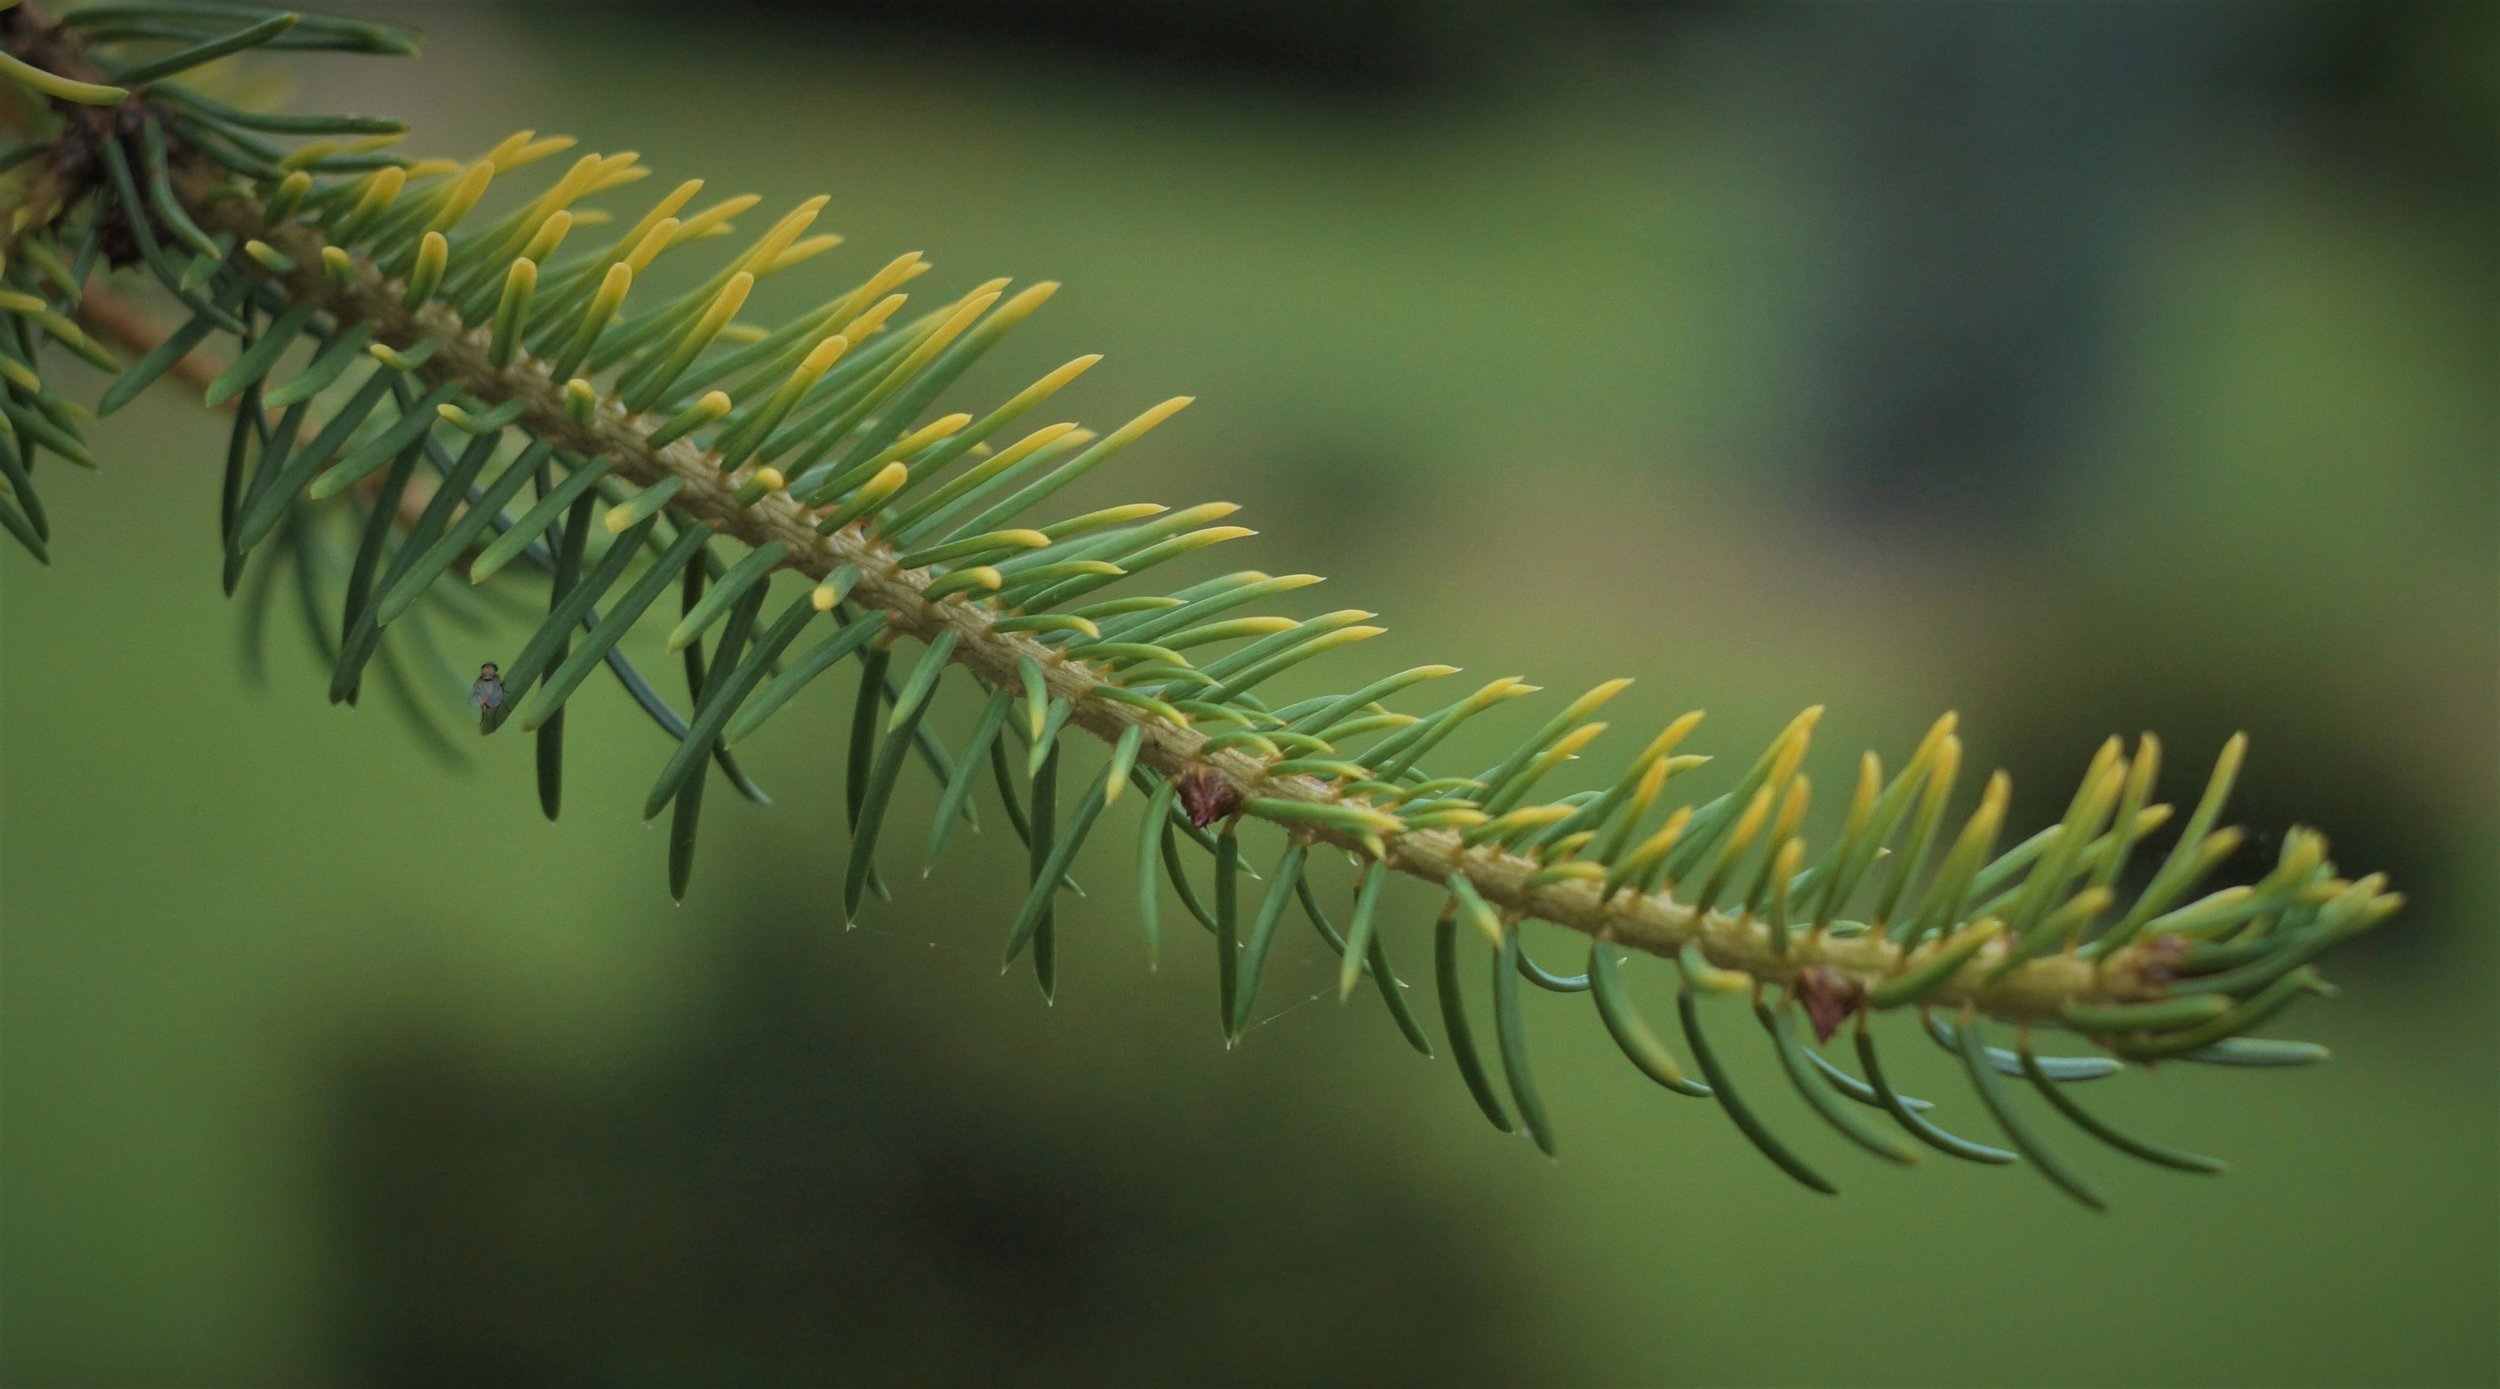 Its foliage is tipped with yellow, and has a hard to capture blue undertone.